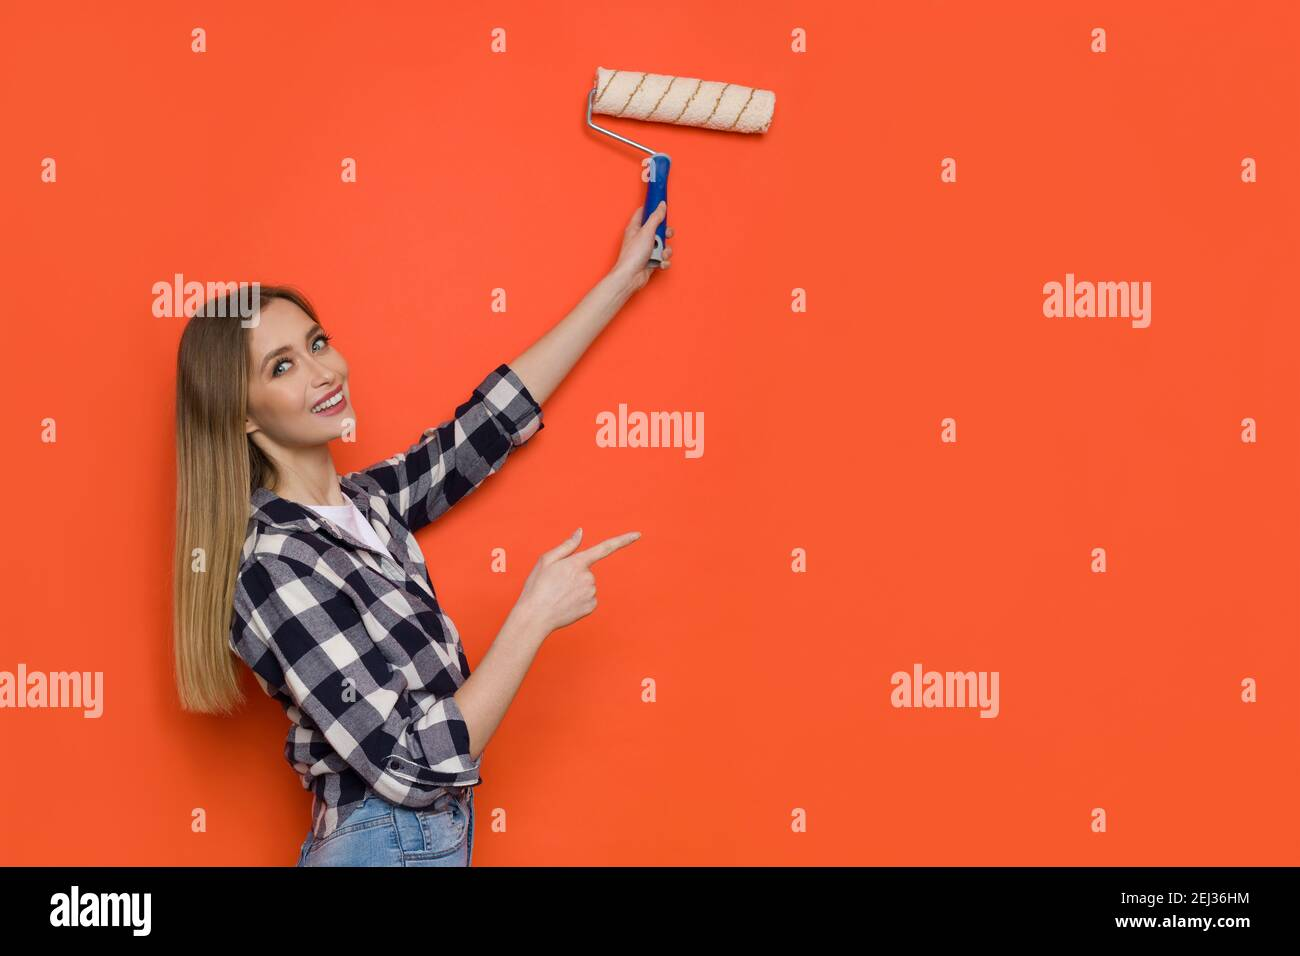 Young blond woman in lumberjack shirt and jeans is painting orange wall with painting roller, looking at camera over the shoulder and pointing. Waist Stock Photo